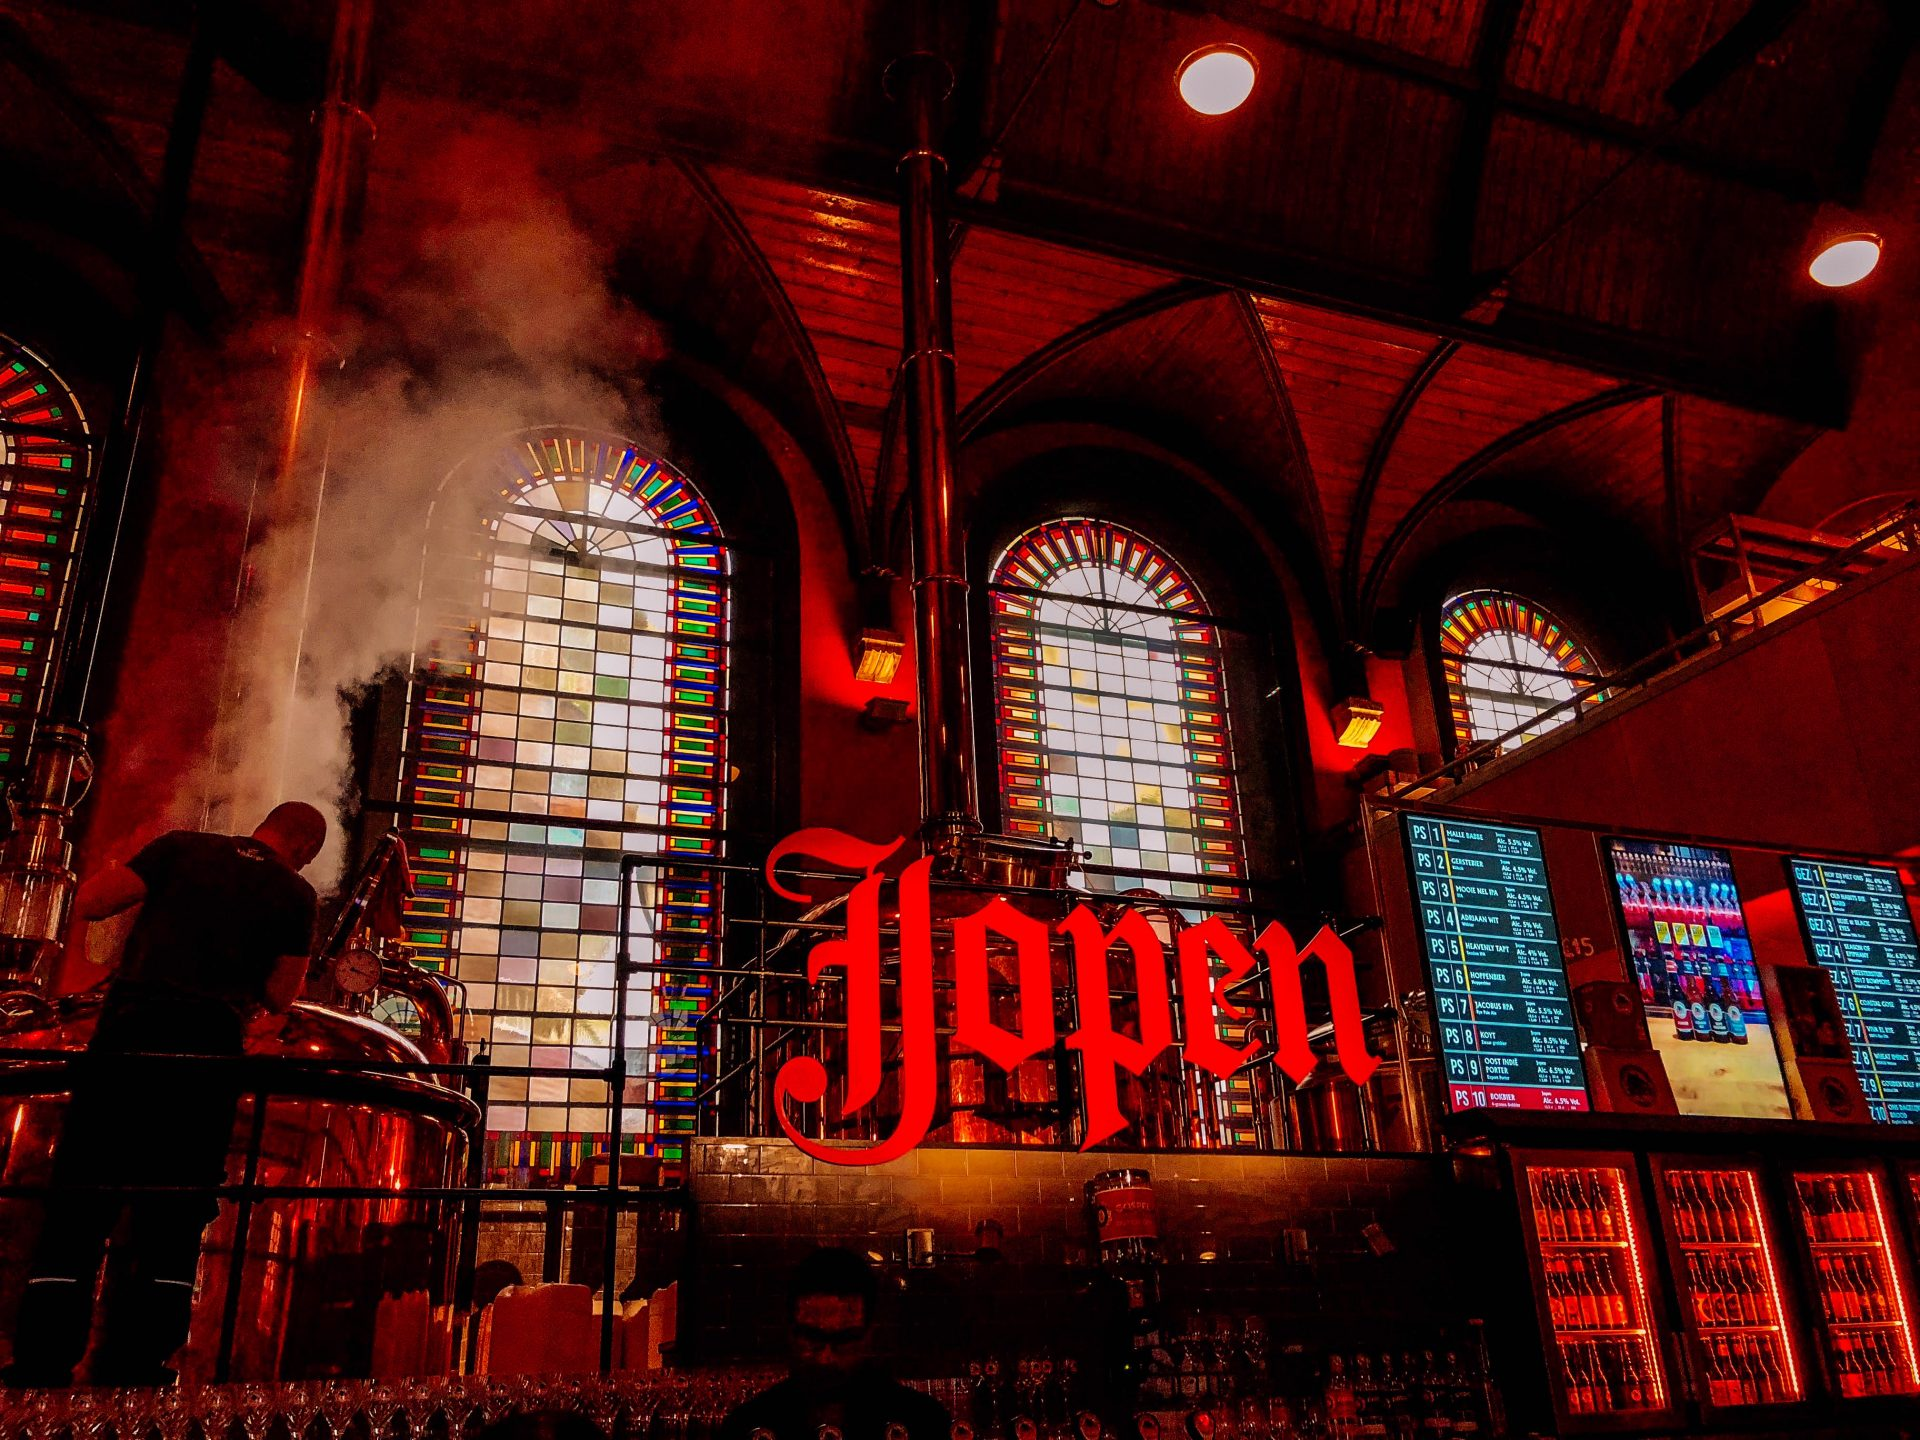 Colorful stained glass windows in the background, shiny beer vessels a top a bar area showing a lit in red sign saying Jopen with beer taps below at a beer tap room in Haarlem Netherlands Europe.